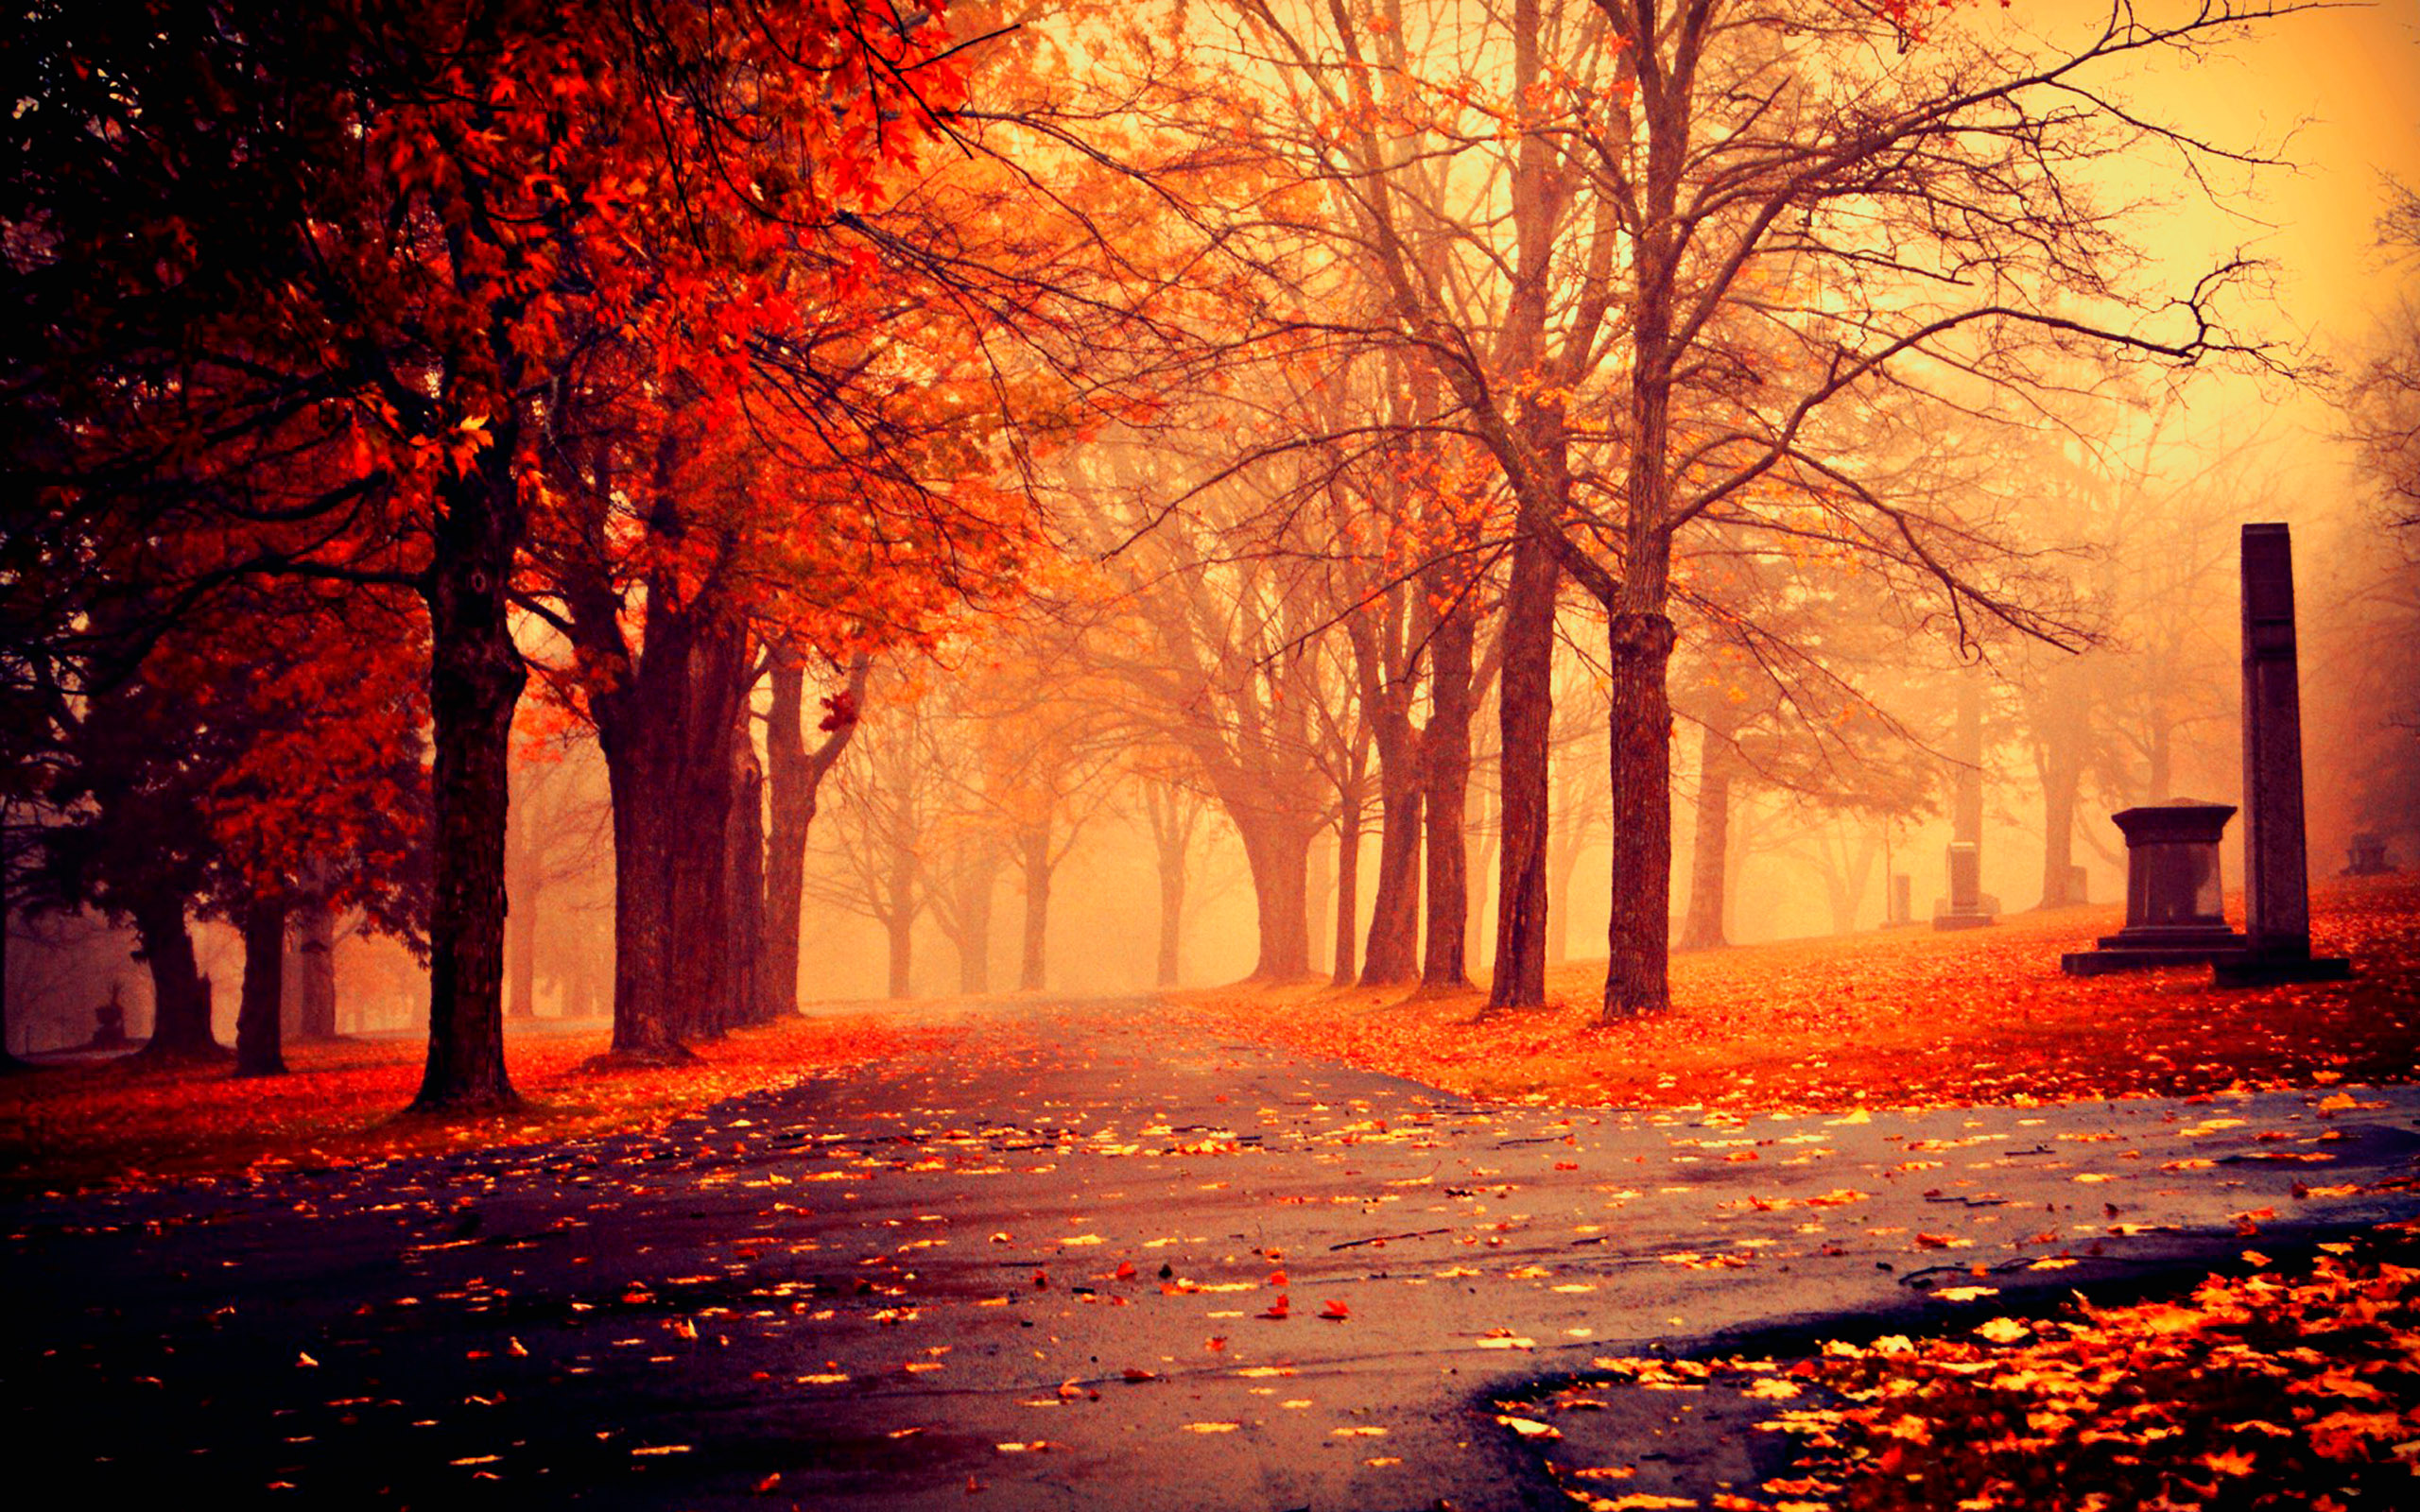 Spooky Fall Wallpaper Hd Autumn Image 9775 Hdwpro